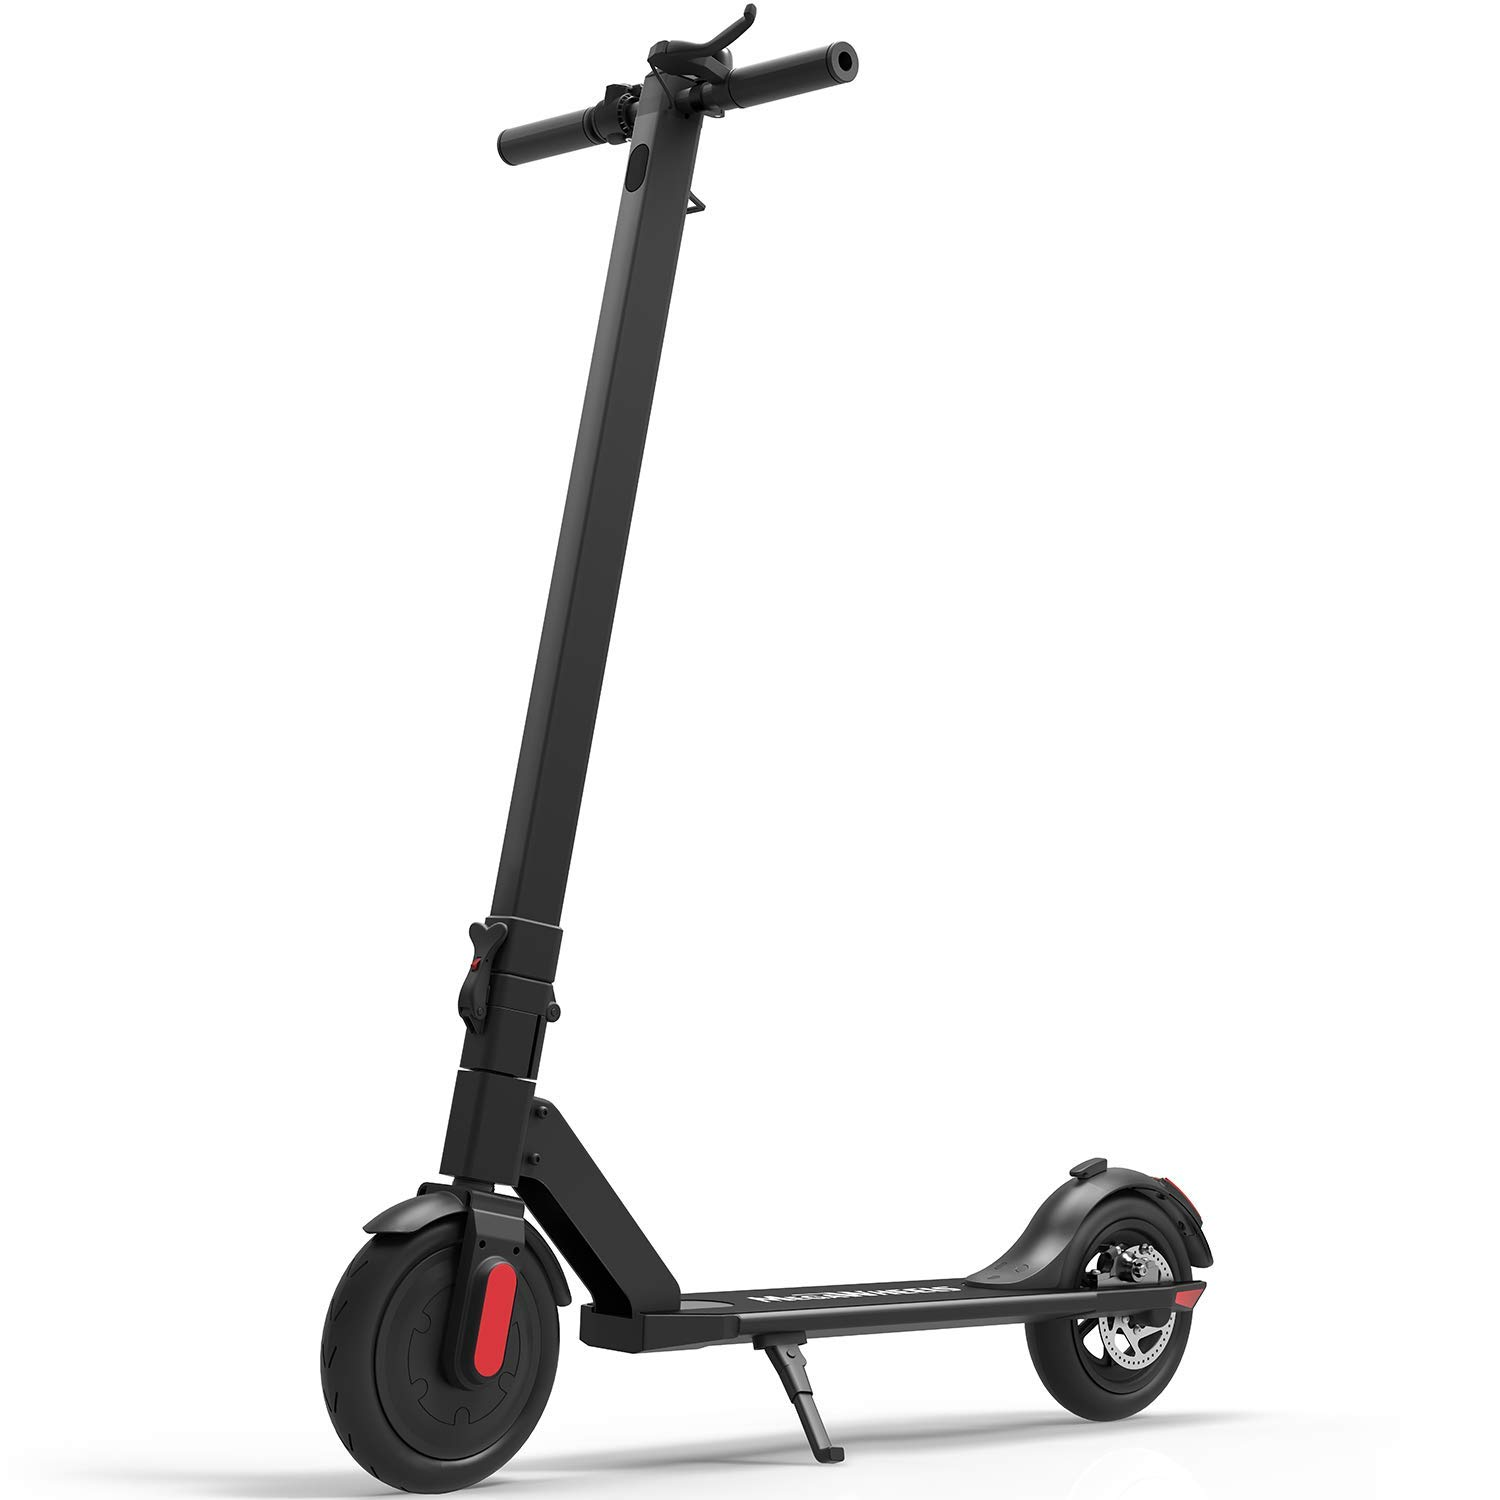 MEGAWHEELS S5 Electric Scooter, 13 Miles Long Range Battery, Up to 15.5 MPH, 8.5'' Pneumatic Tires, Portable and Folding Commuter Electric Scooter for Adults